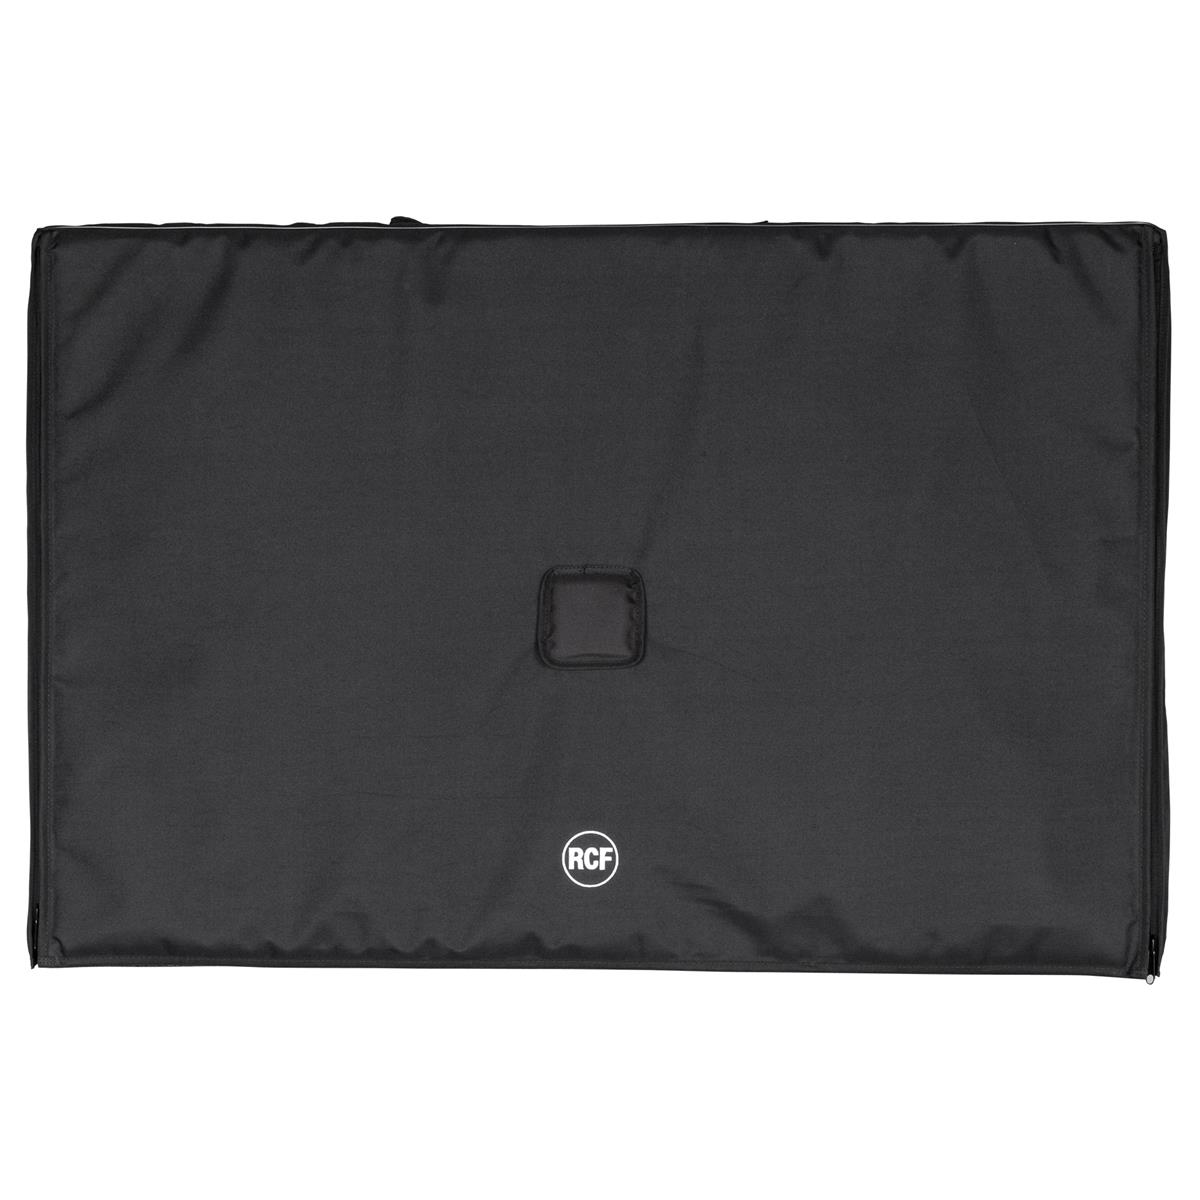 RCF RP 9007 RAIN PROTECTION Rain cover to protect SUB 9007-A